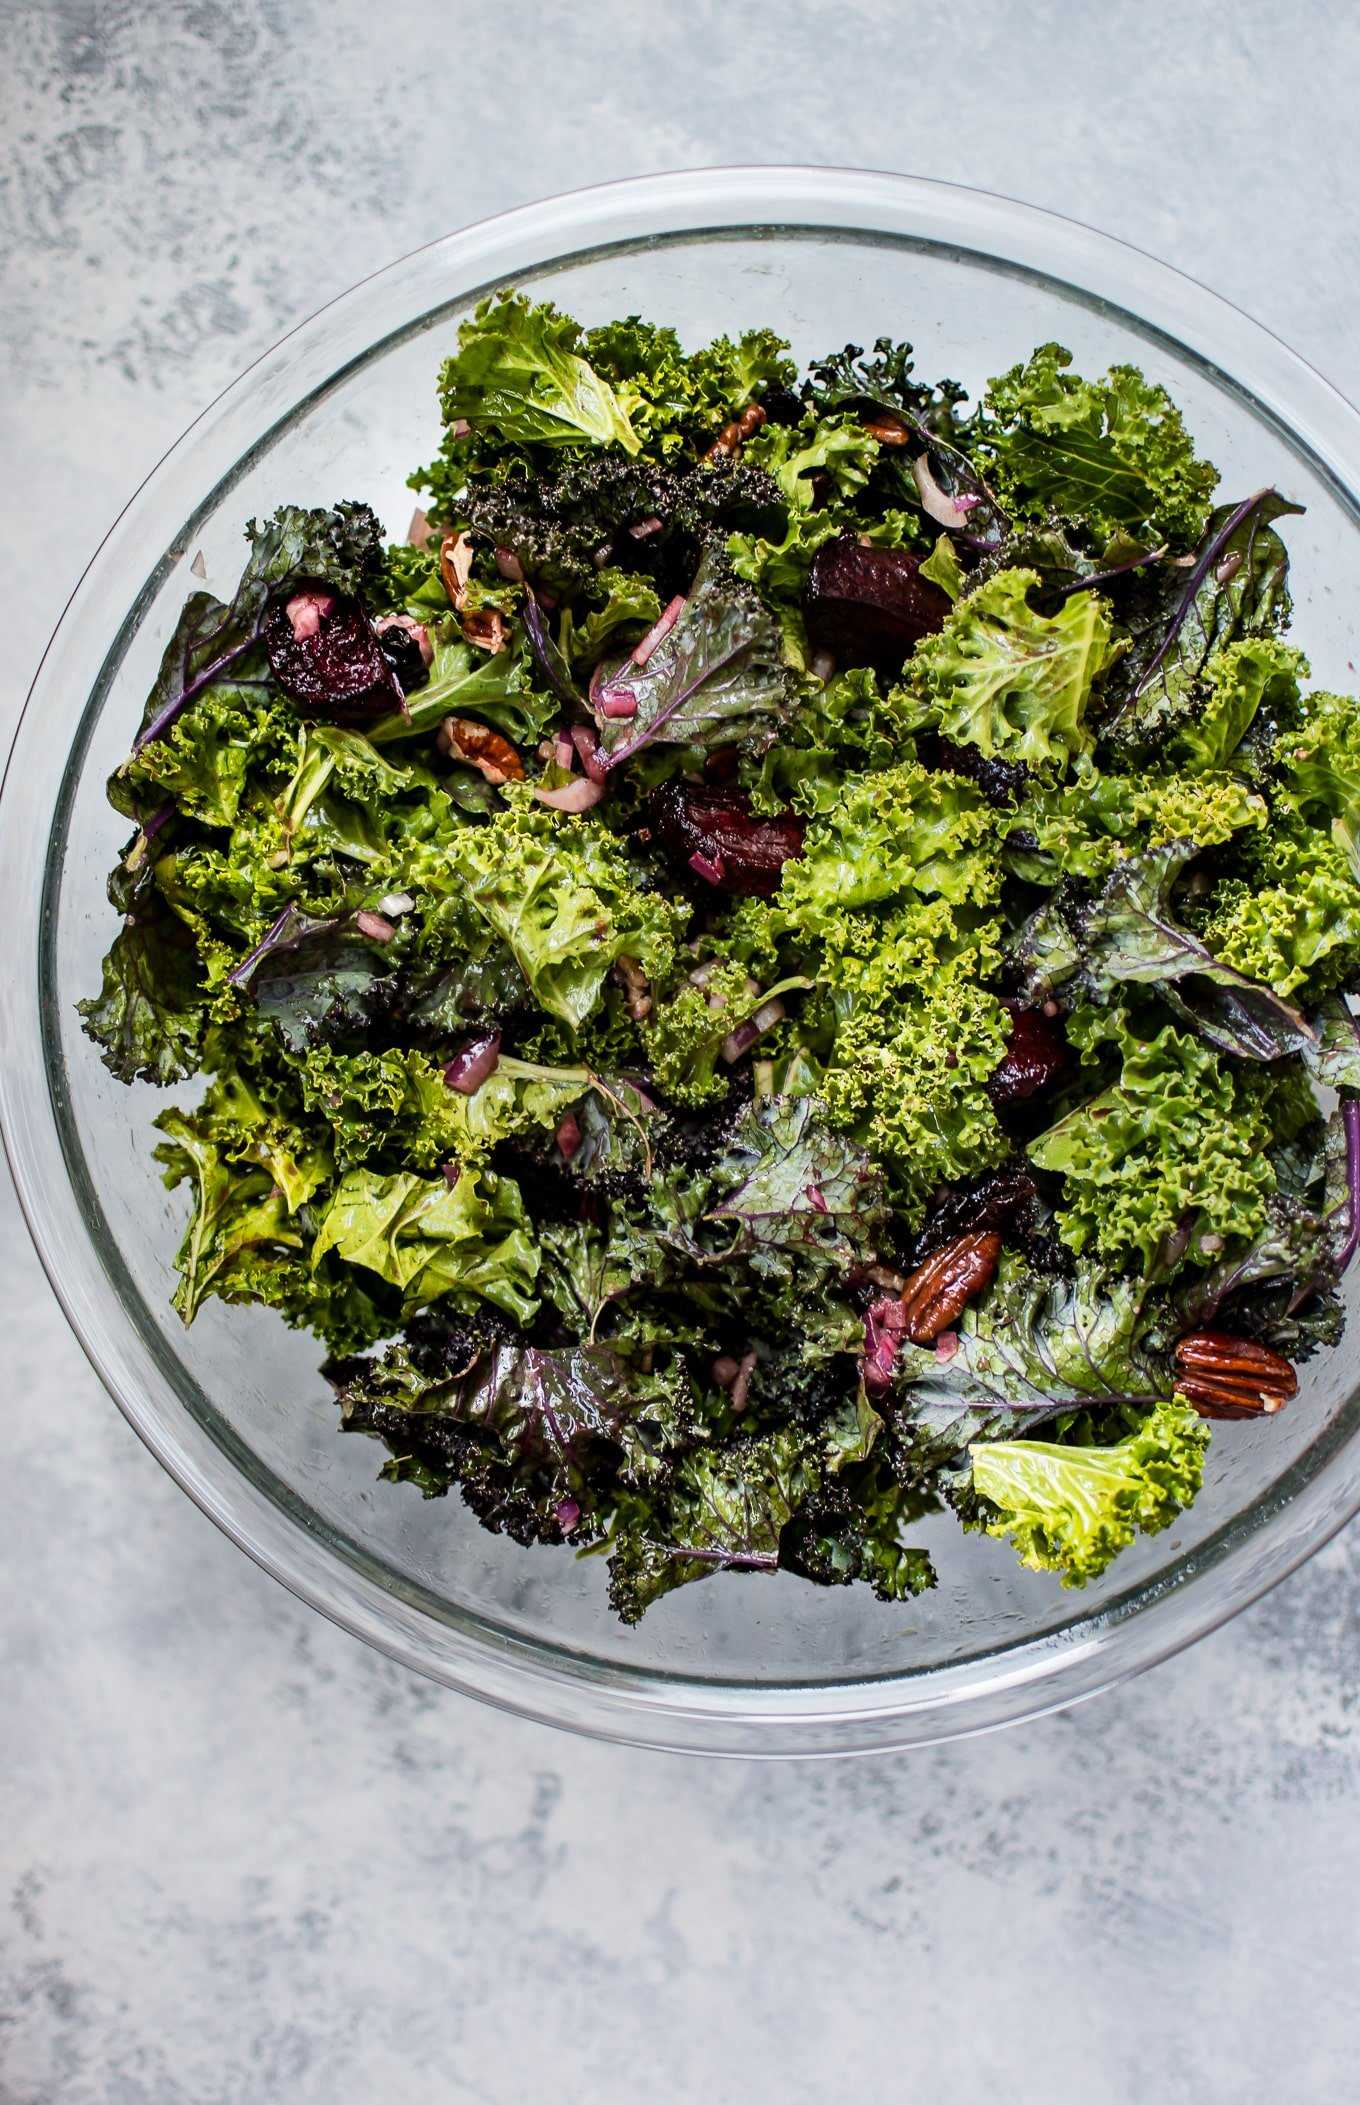 This kale and beet salad is a healthy vegetarian fall salad with dried cranberries, pecans, and a tangy balsamic vinaigrette dressing.